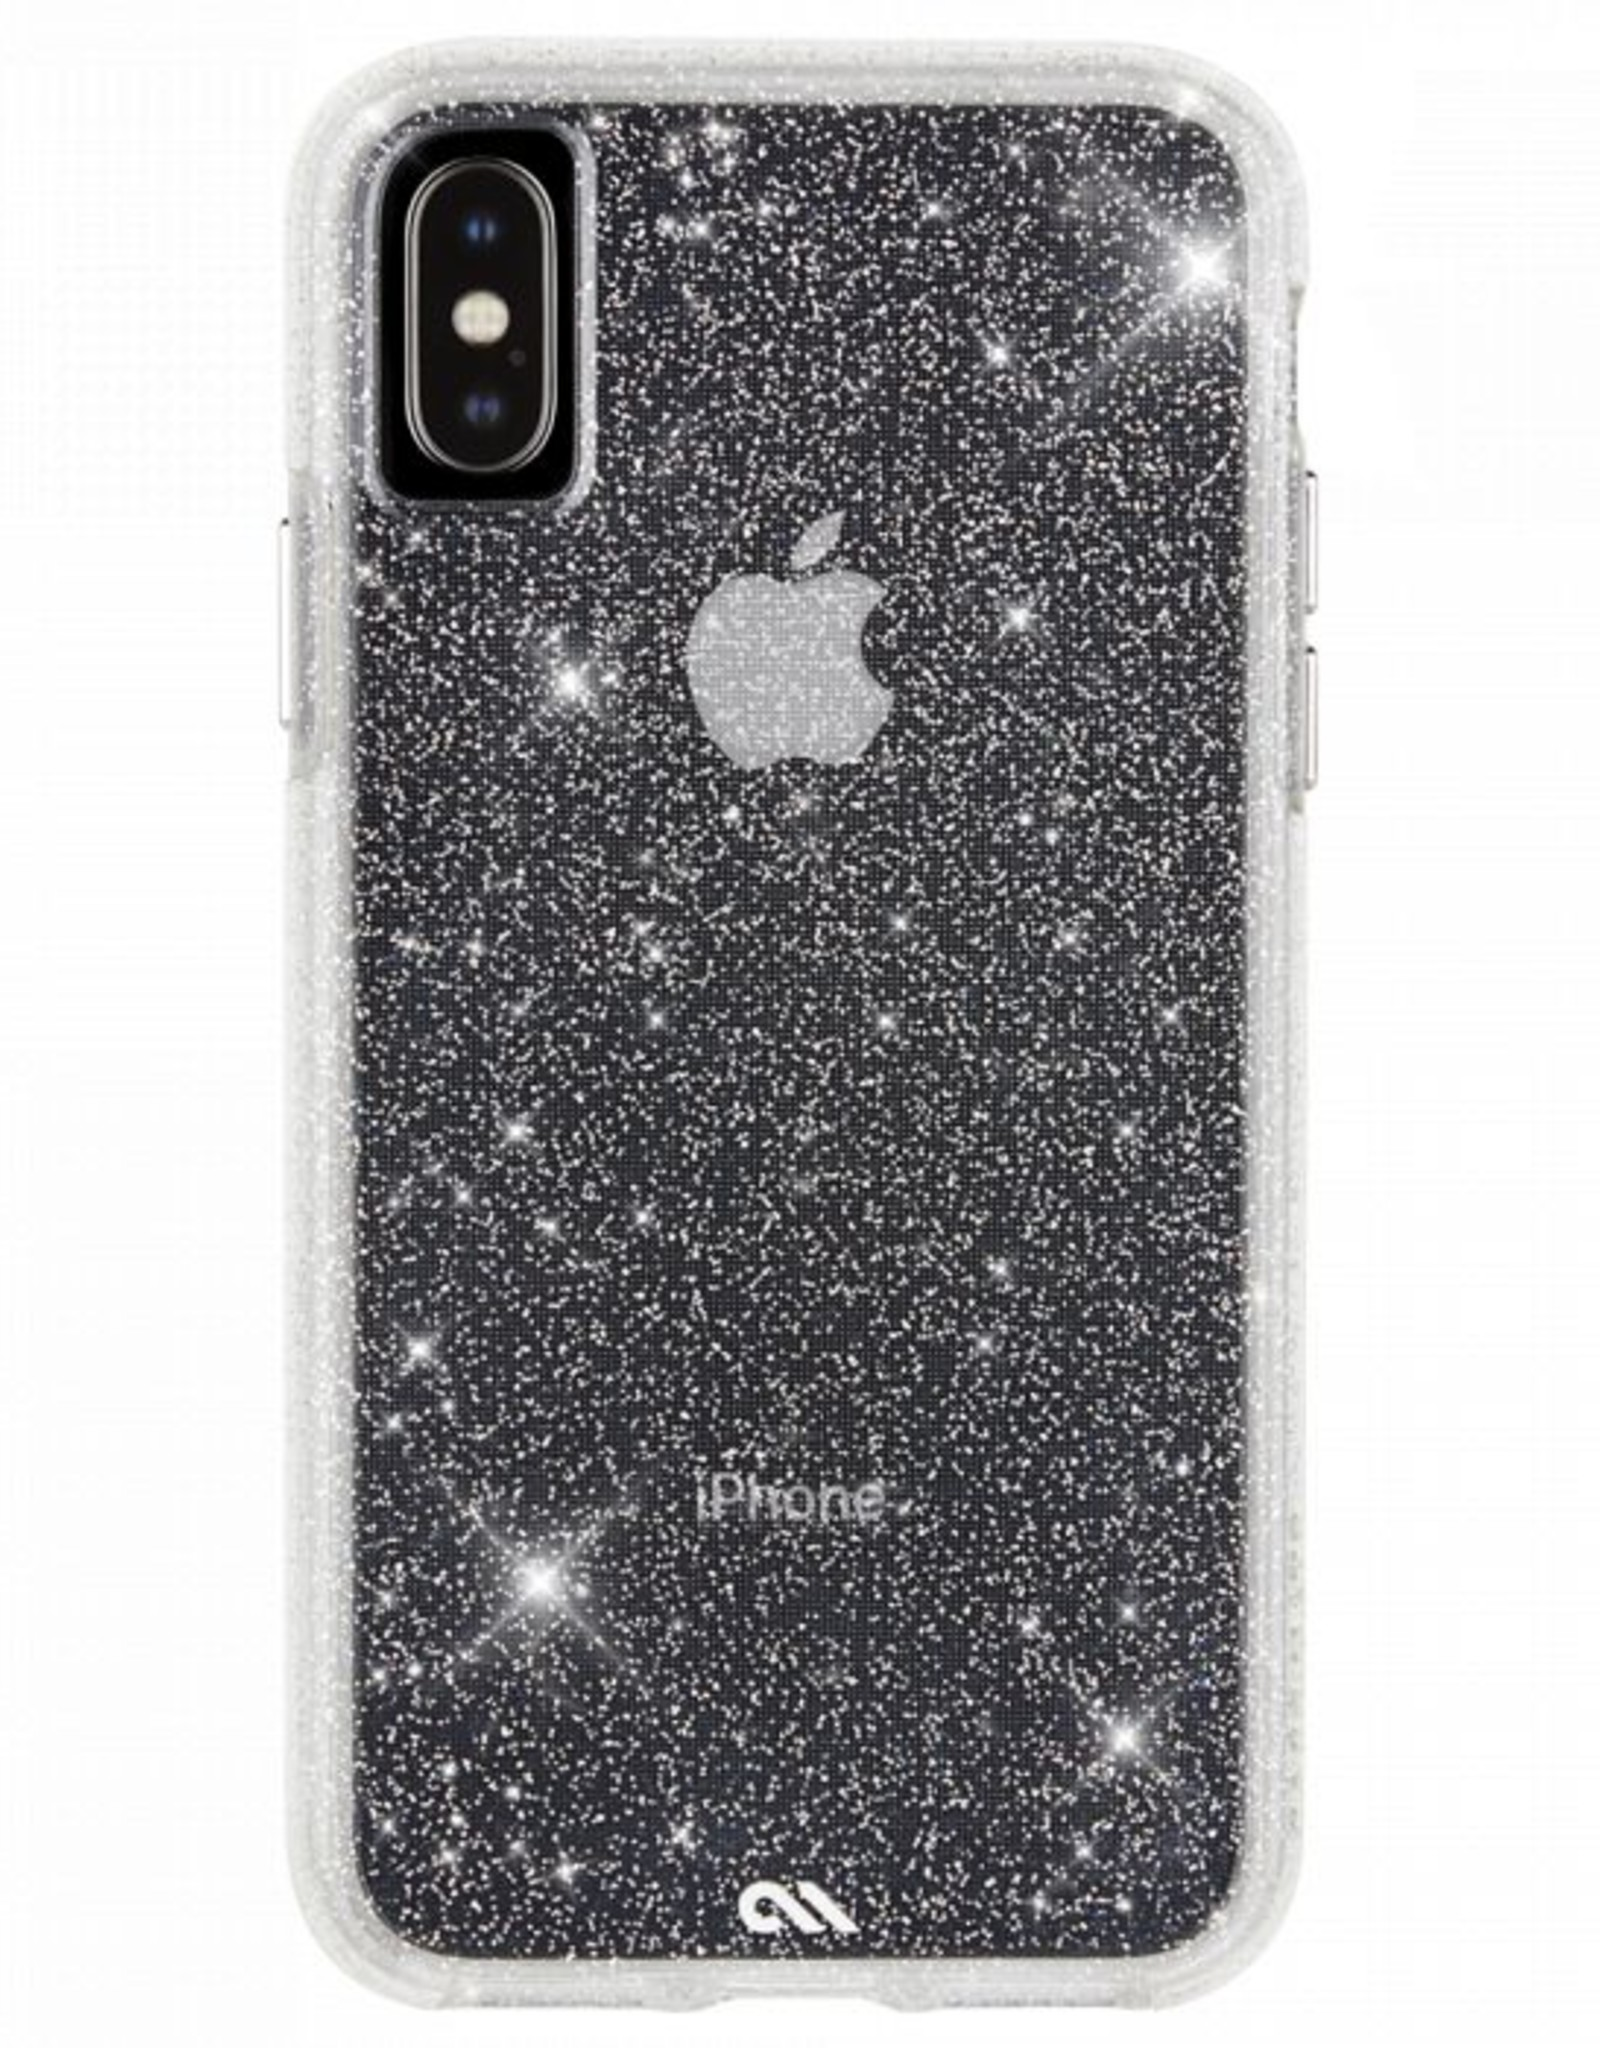 Case-Mate Case-mate | iPhone X/Xs Clear Sheer Crystal case | 15-03522